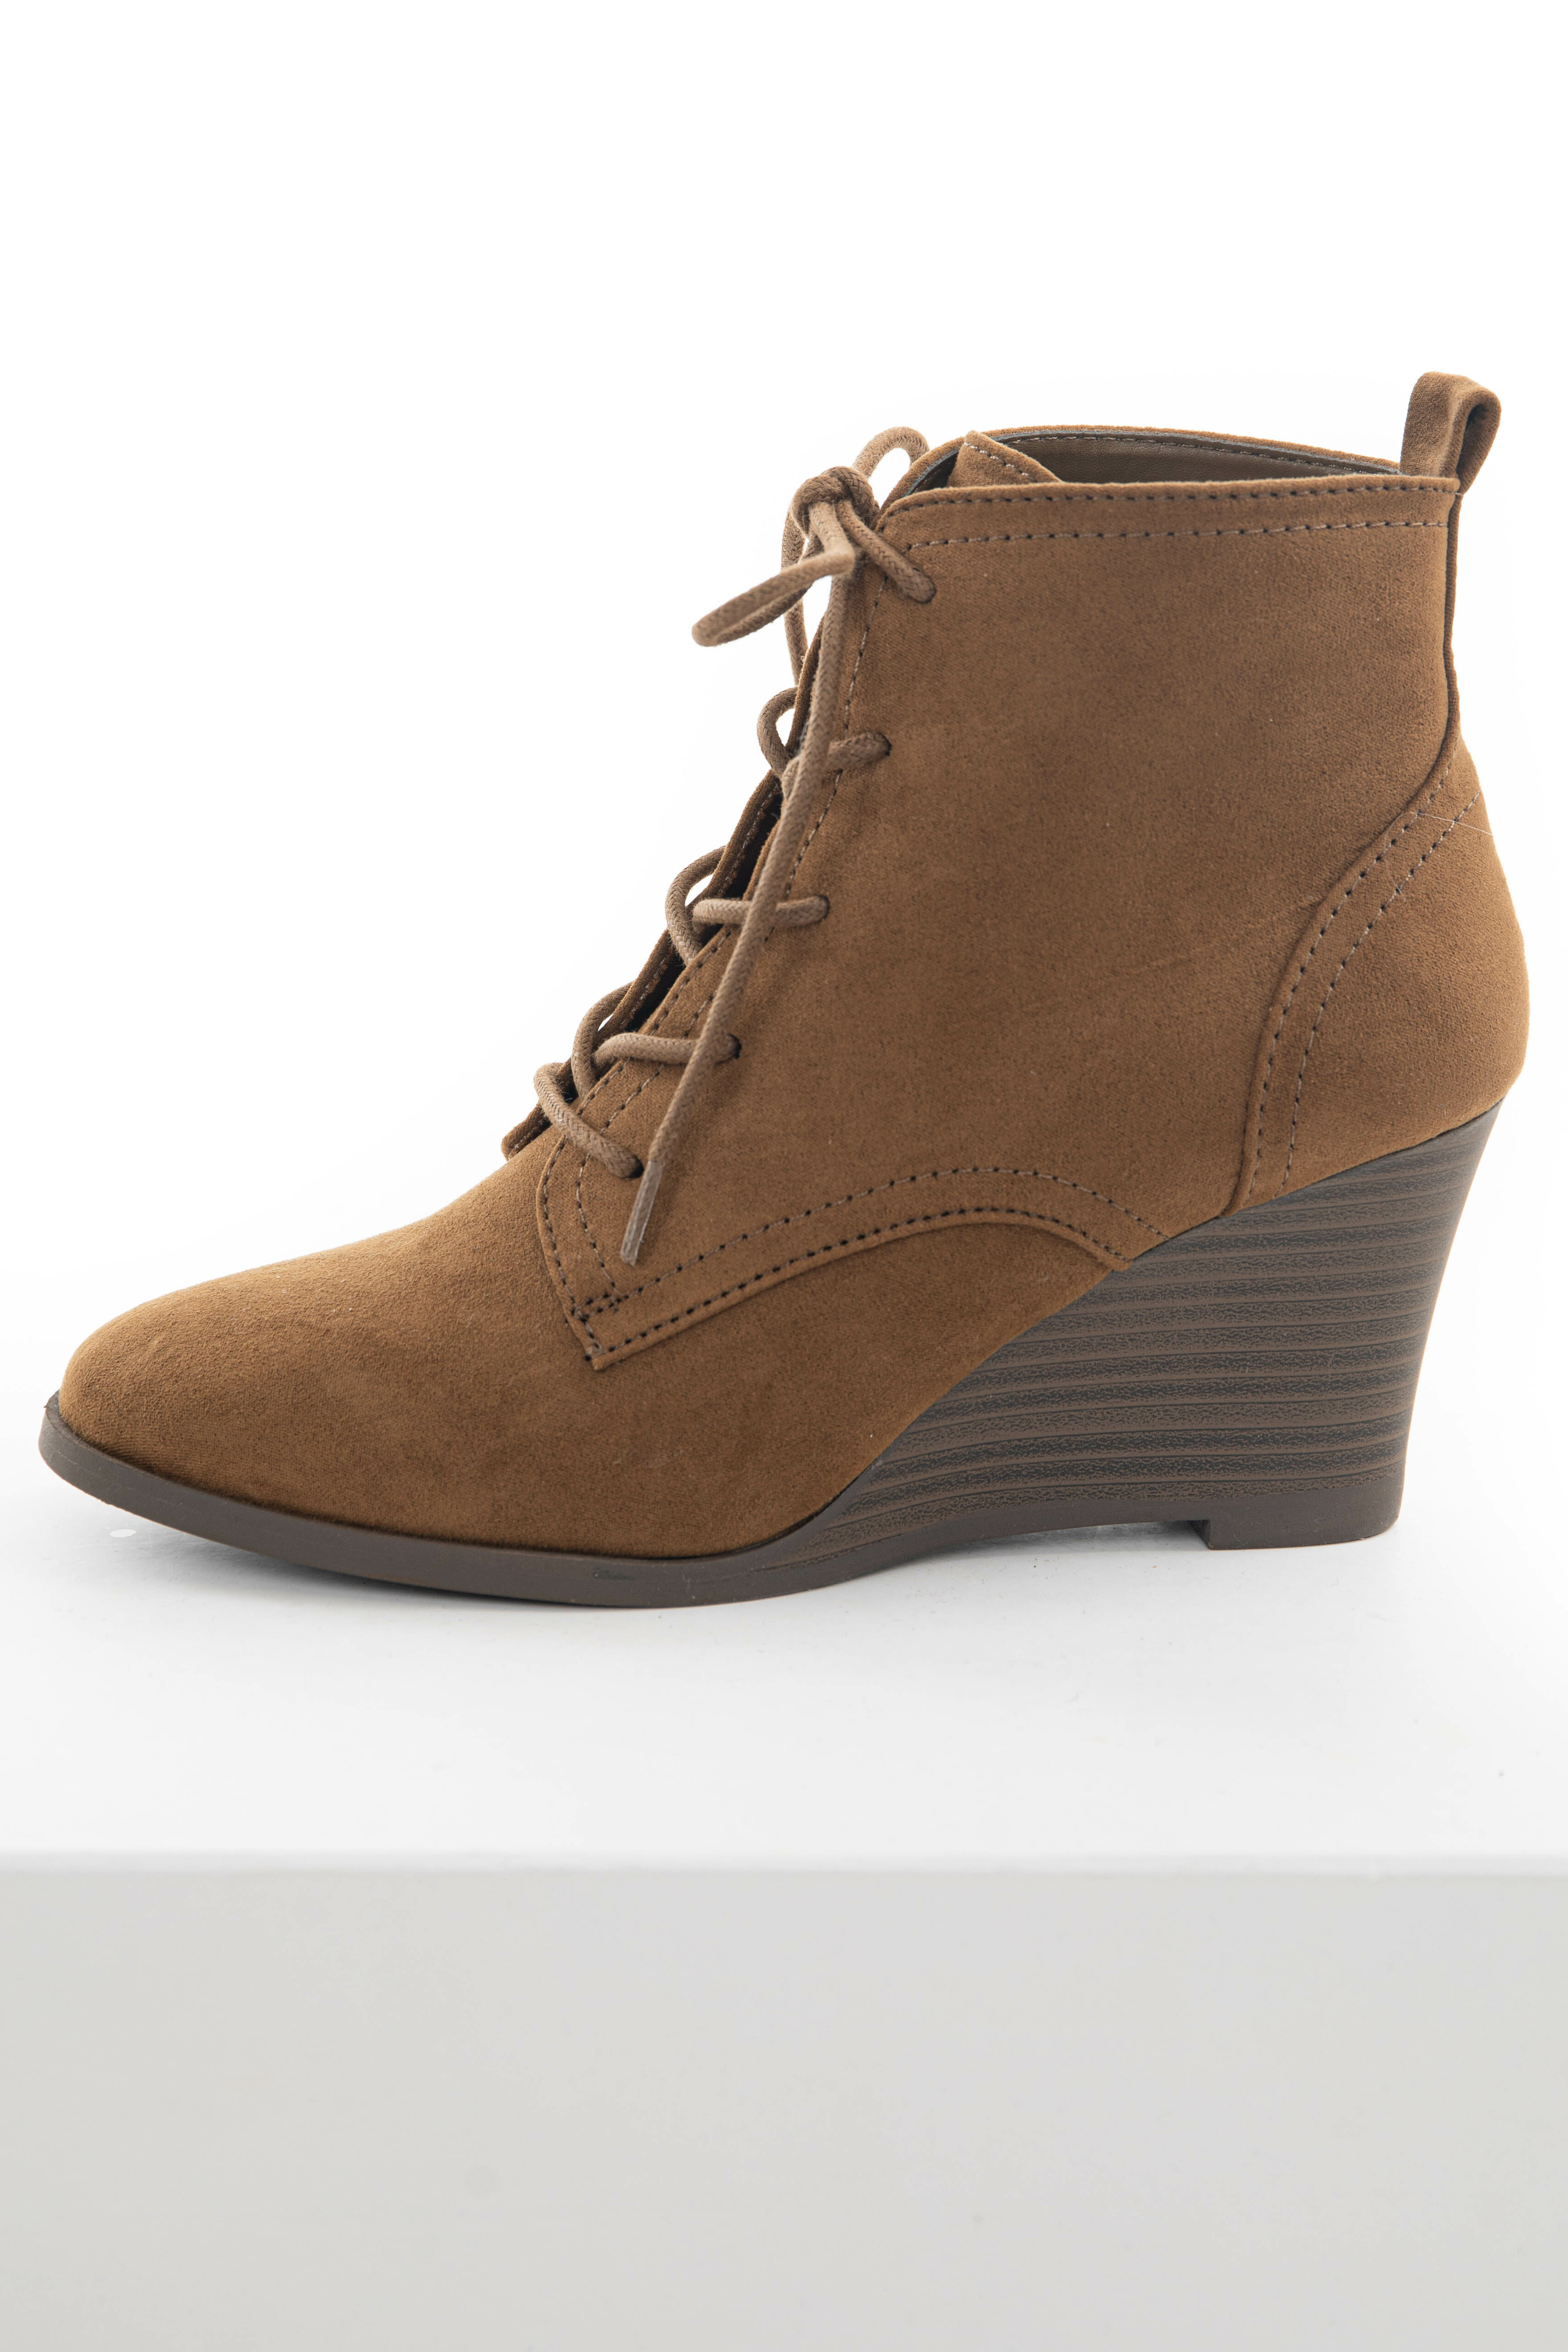 Peanut Suede Pointed Toe Wedge Lace Up Booties